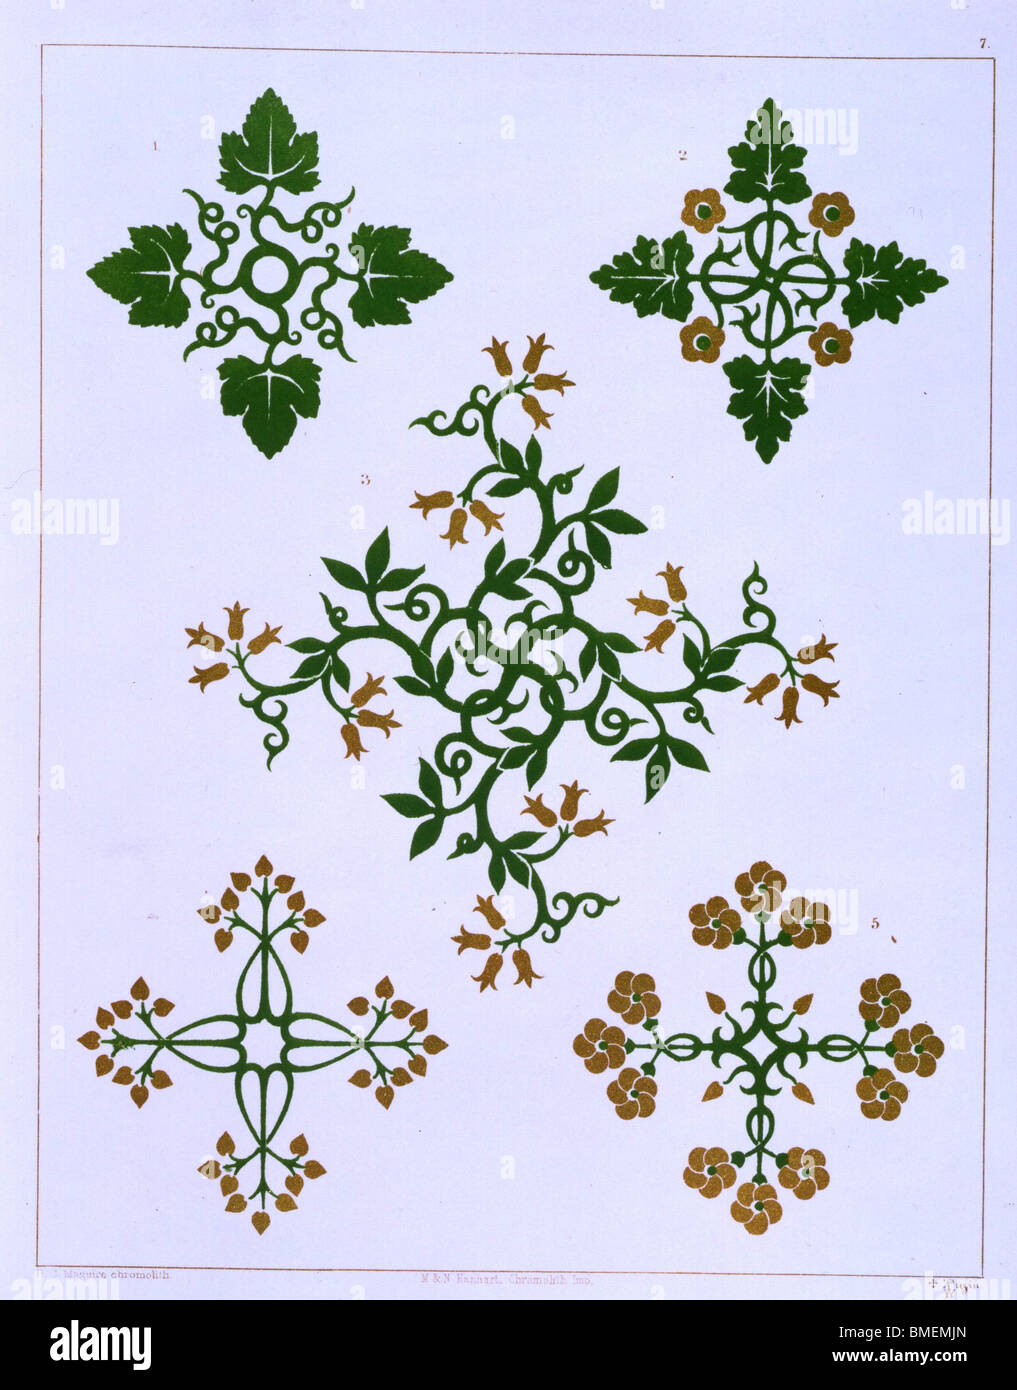 Floriated Ornament By AWN Pugin.  London. 1848 - Stock Image